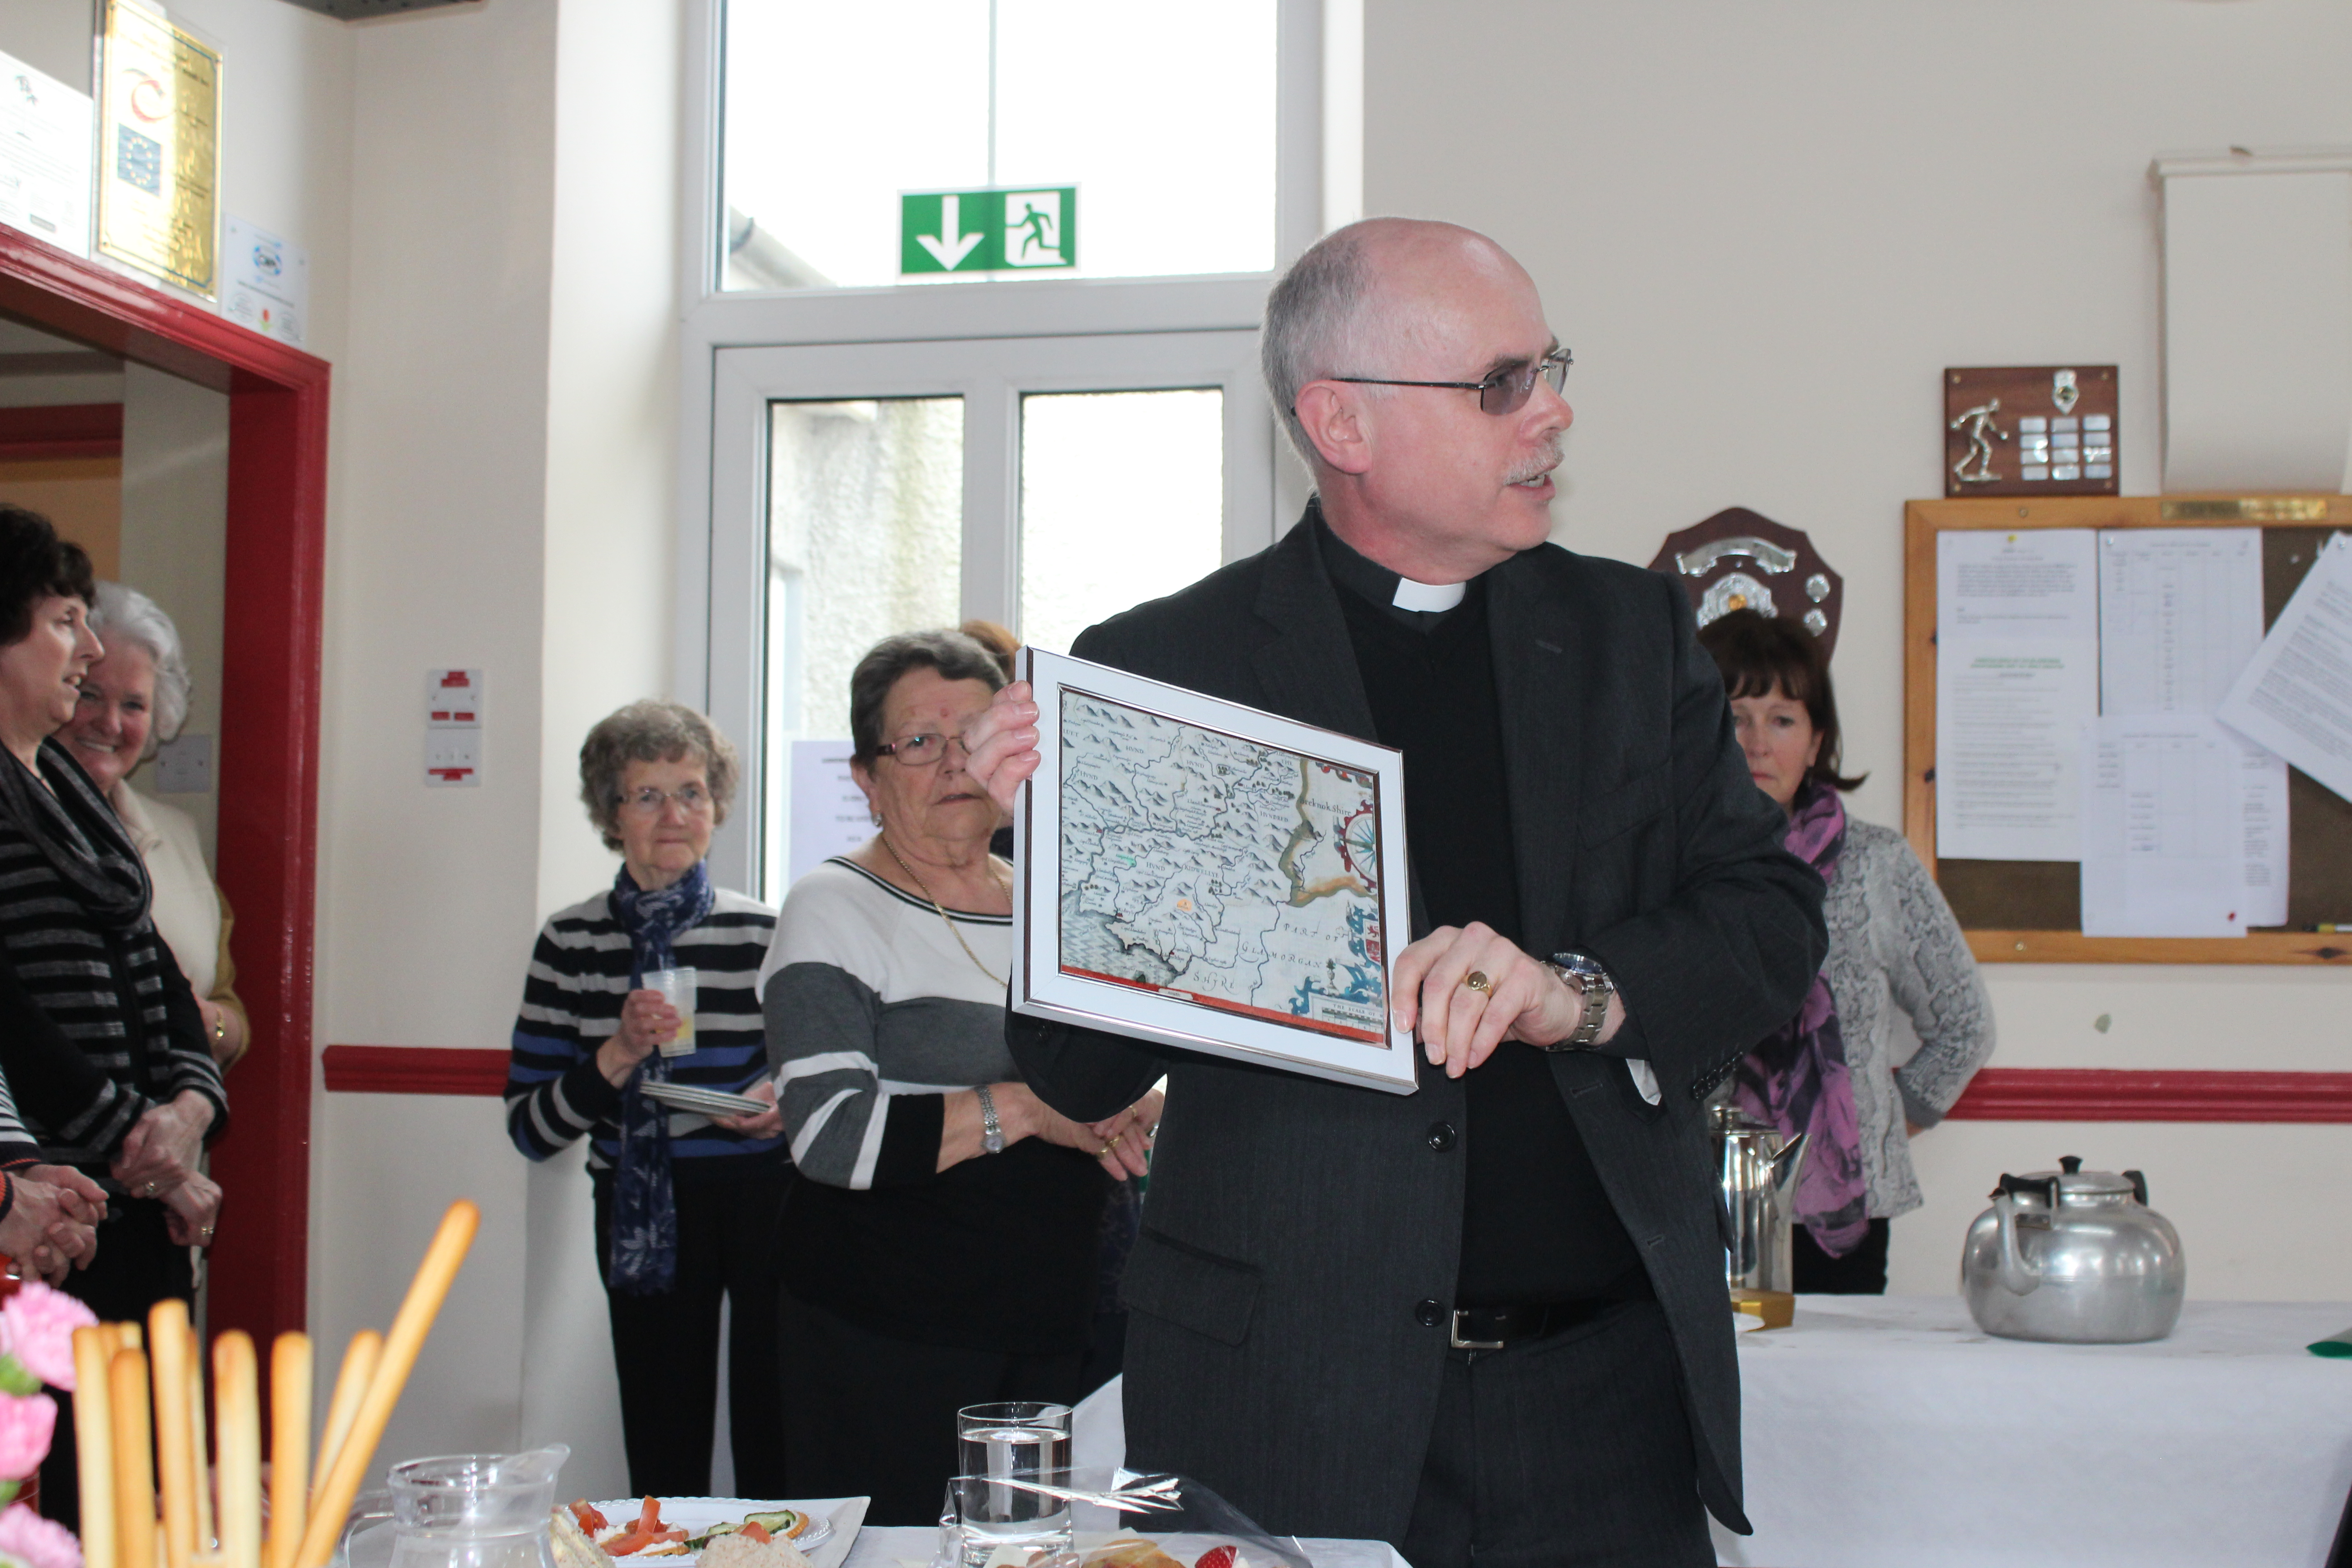 ...and a presentation by vicar Marc Rowlands